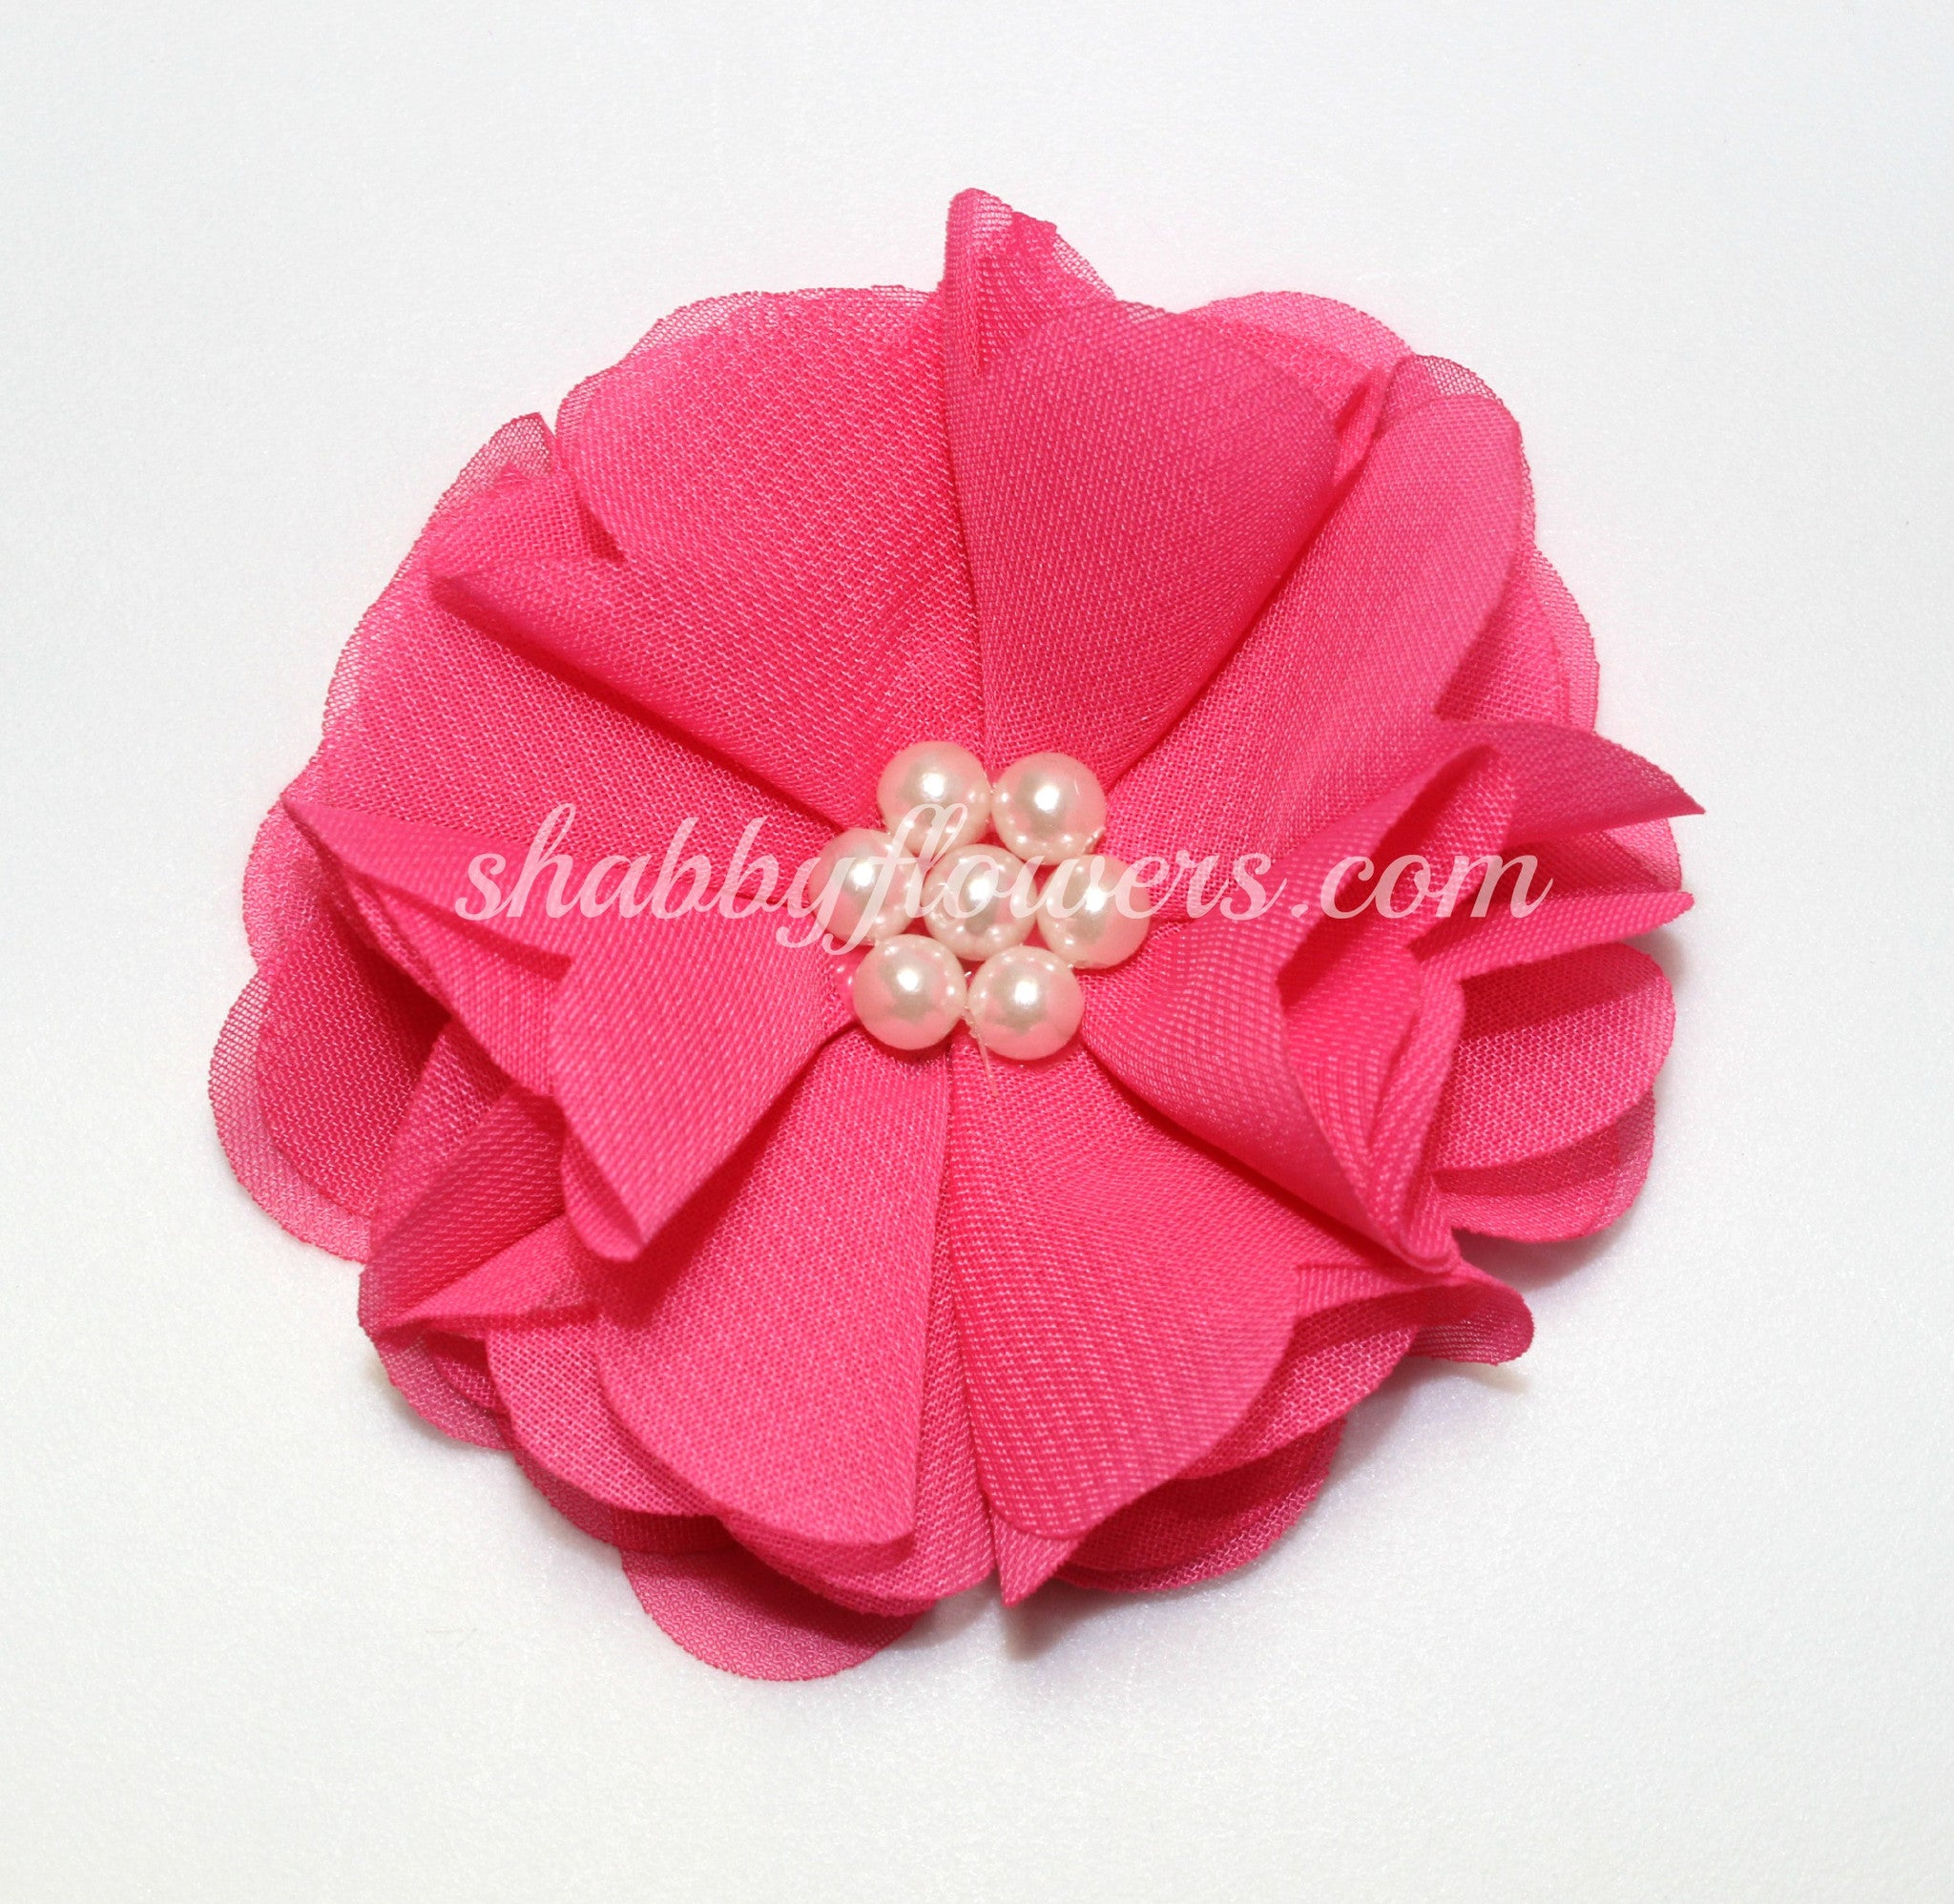 Chiffon Pearl Flower - Hot Pink - shabbyflowers.com